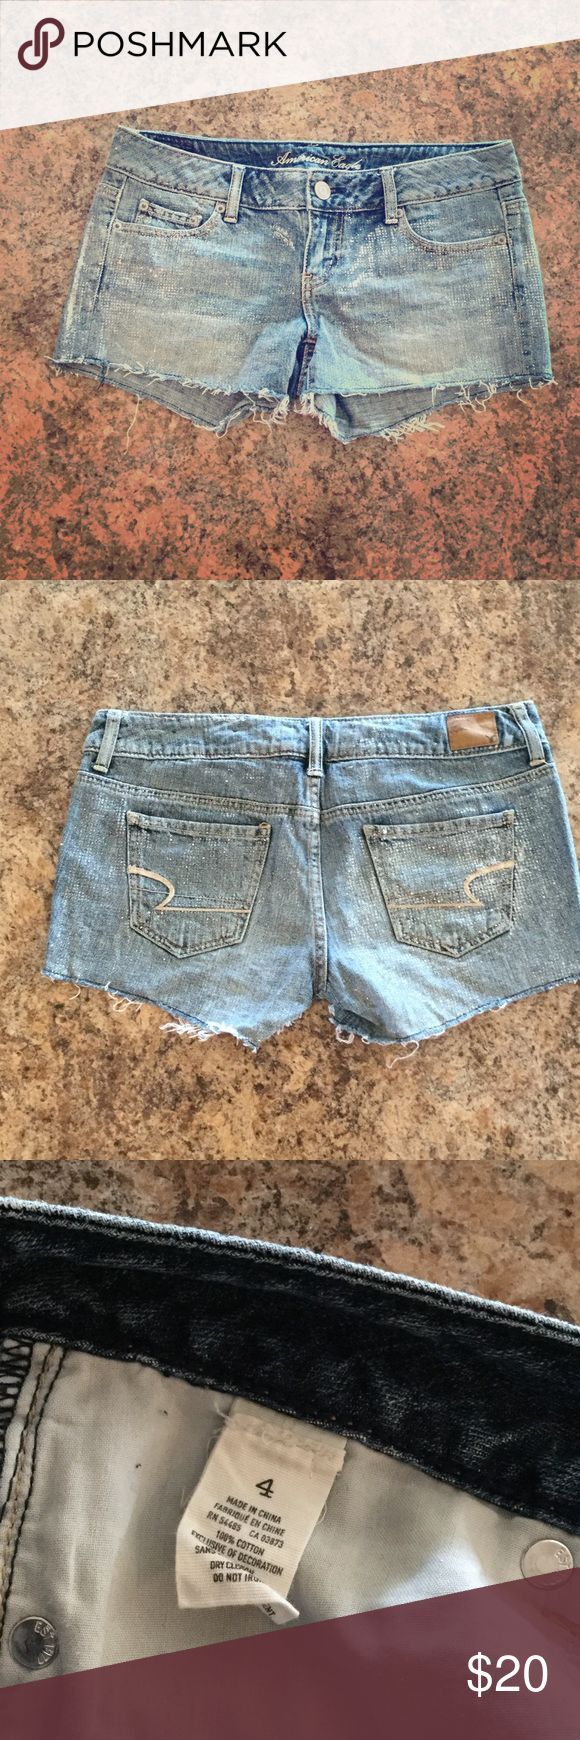 American Eagle Shorts American Eagle shorts- light/medium wash with silver sparkle, frayed bottom. Size 4 excellent condition. Feel free to make an offer! 😃 American Eagle Outfitters Shorts Jean Shorts